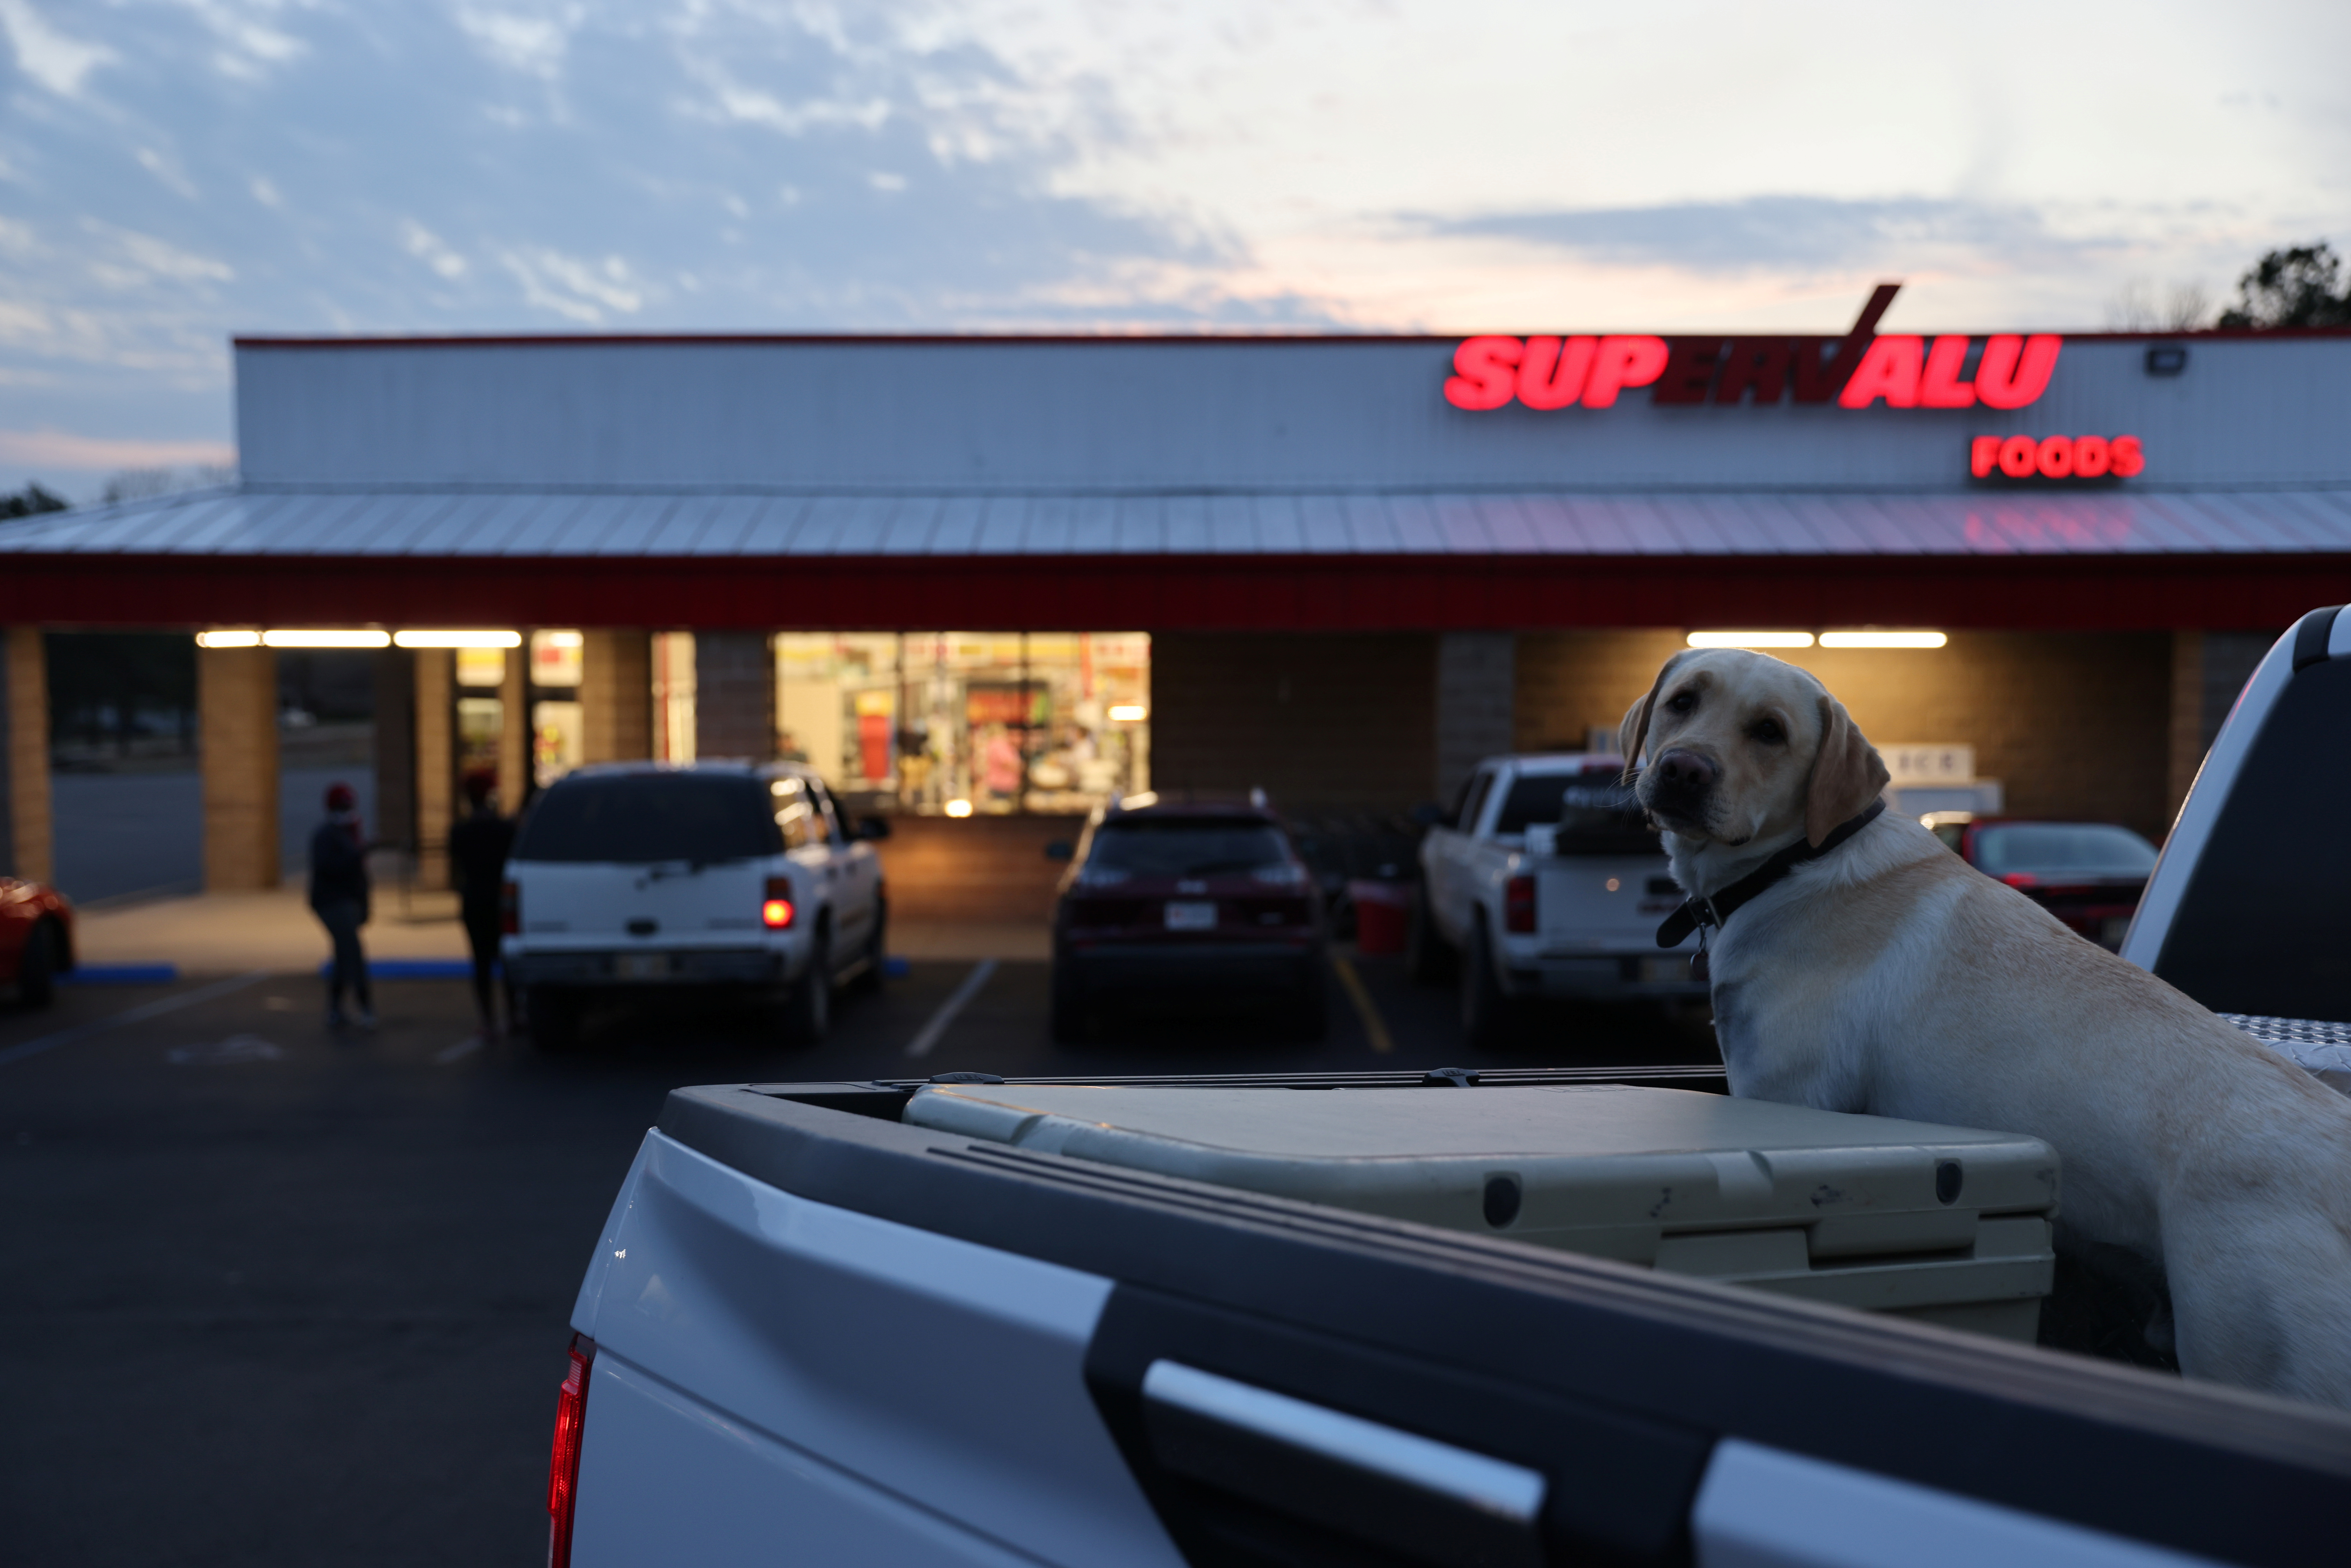 A dog waits for its owner outside the SuperValu grocery store in the small town of Ackerman, Mississippi, U.S. March 11, 2021. REUTERS/Jonathan Ernst